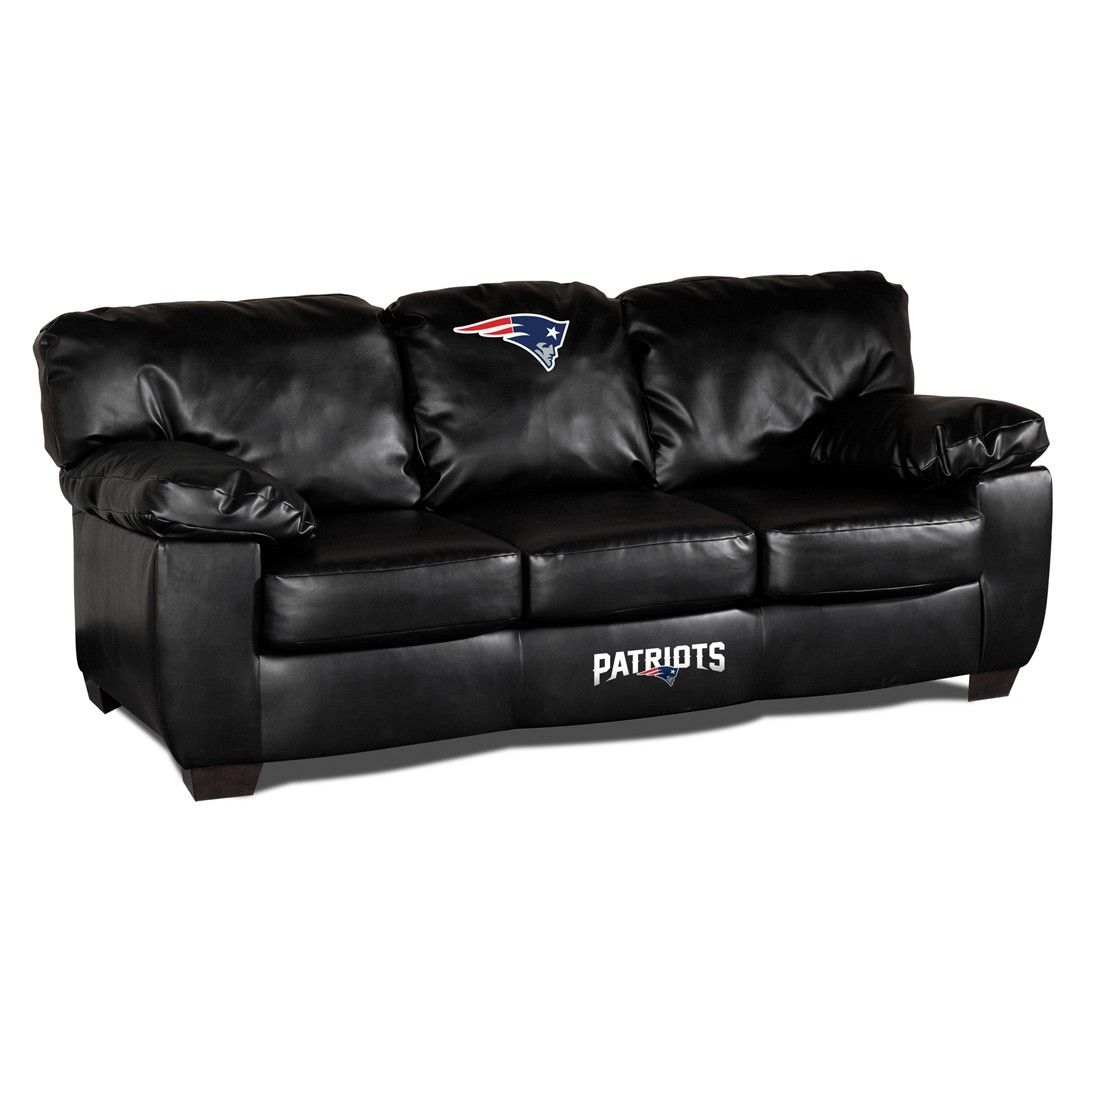 New England Patriots Classic Leather Sofa - 79-4011 - Nfl Football New England Patriots Bath 79-4011